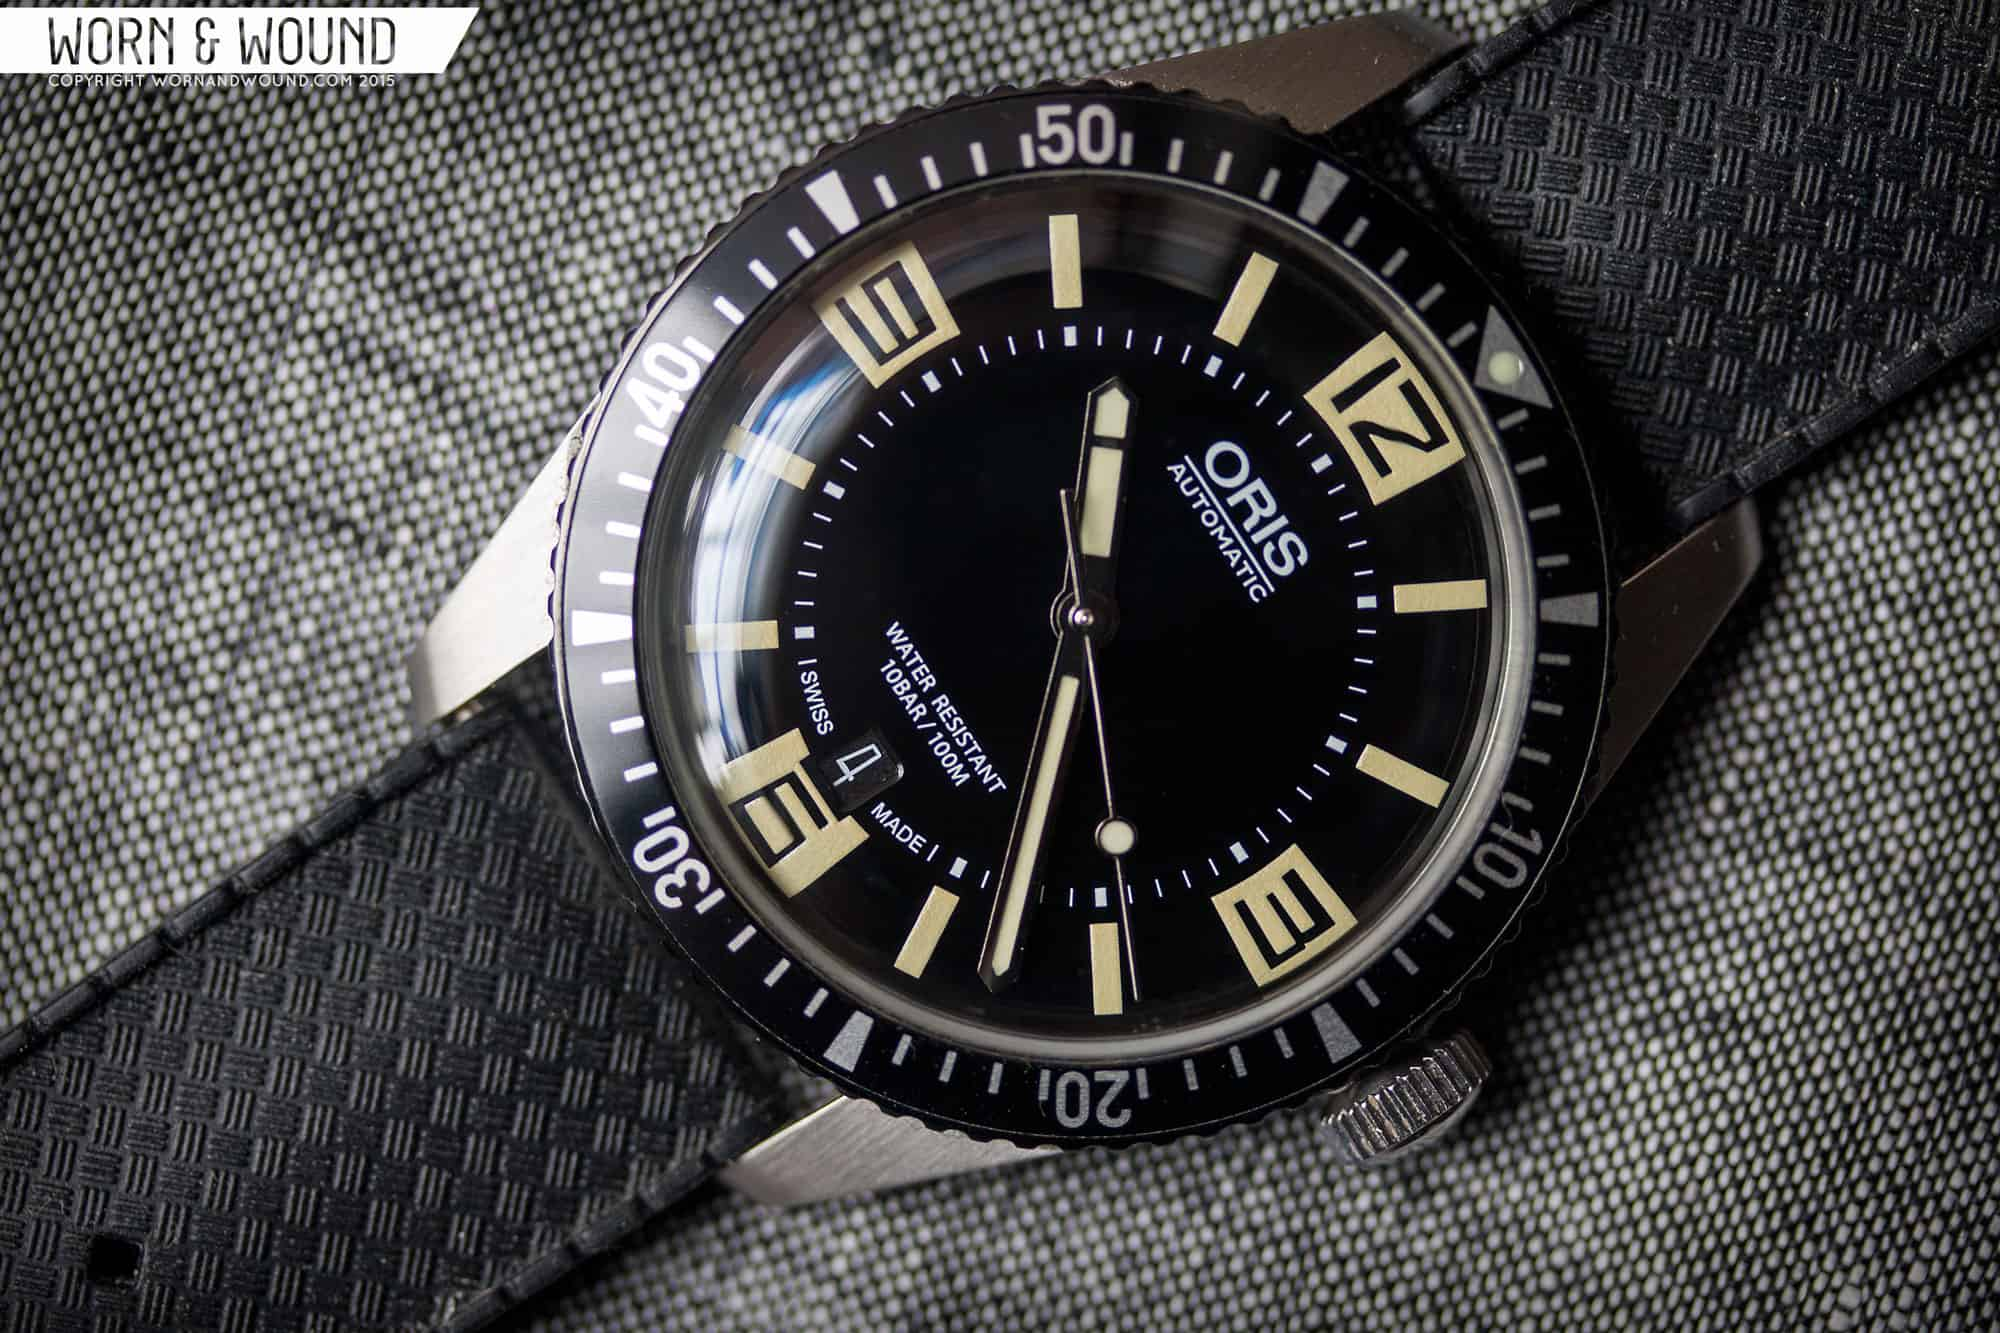 Oris Divers Sixty-Five Review - Worn & Wound